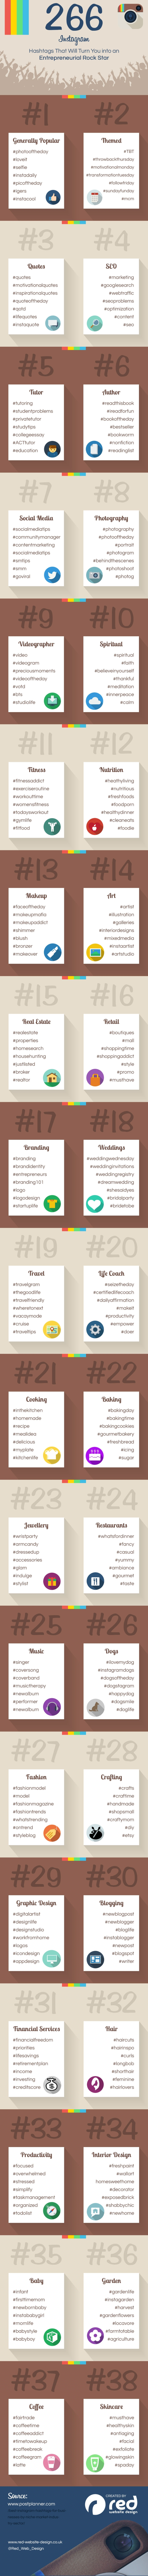 266 Instagram Hashtags That Will Turn You into an Entrepreneurial Rock Star